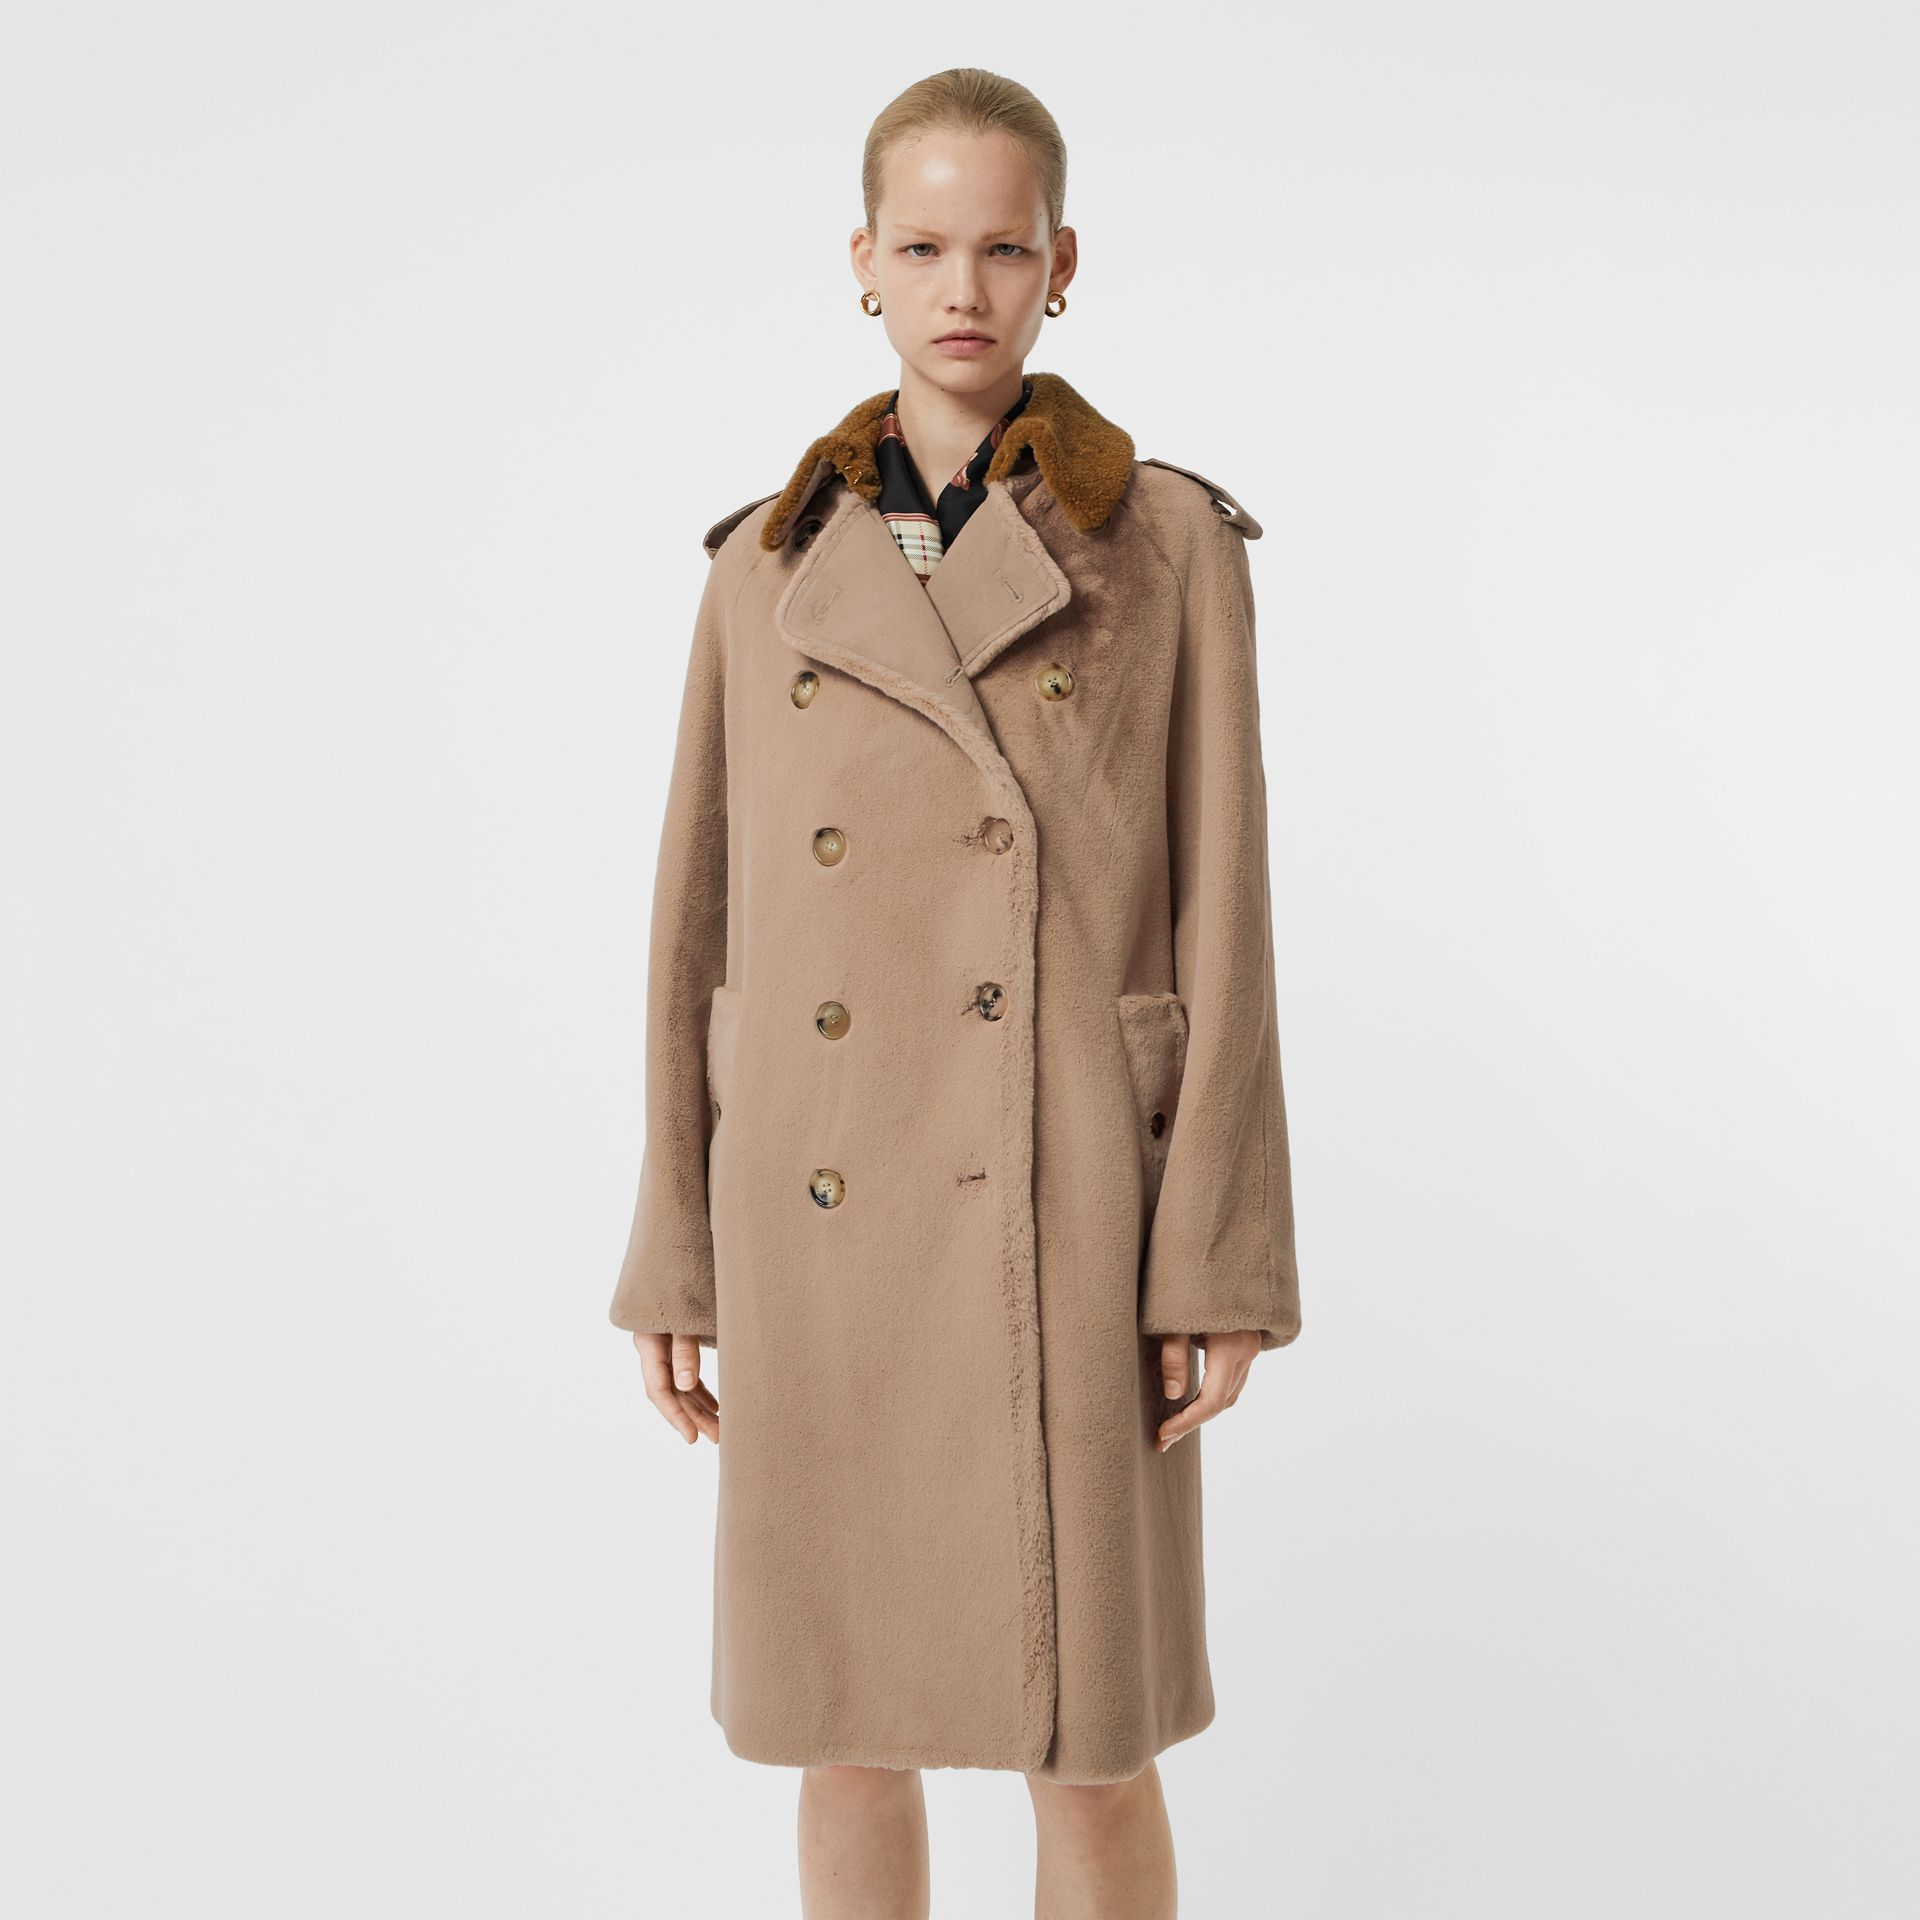 Shearling Trim Faux Fur Trench Coat in Taupe - Women | Burberry Singapore - gallery image 6